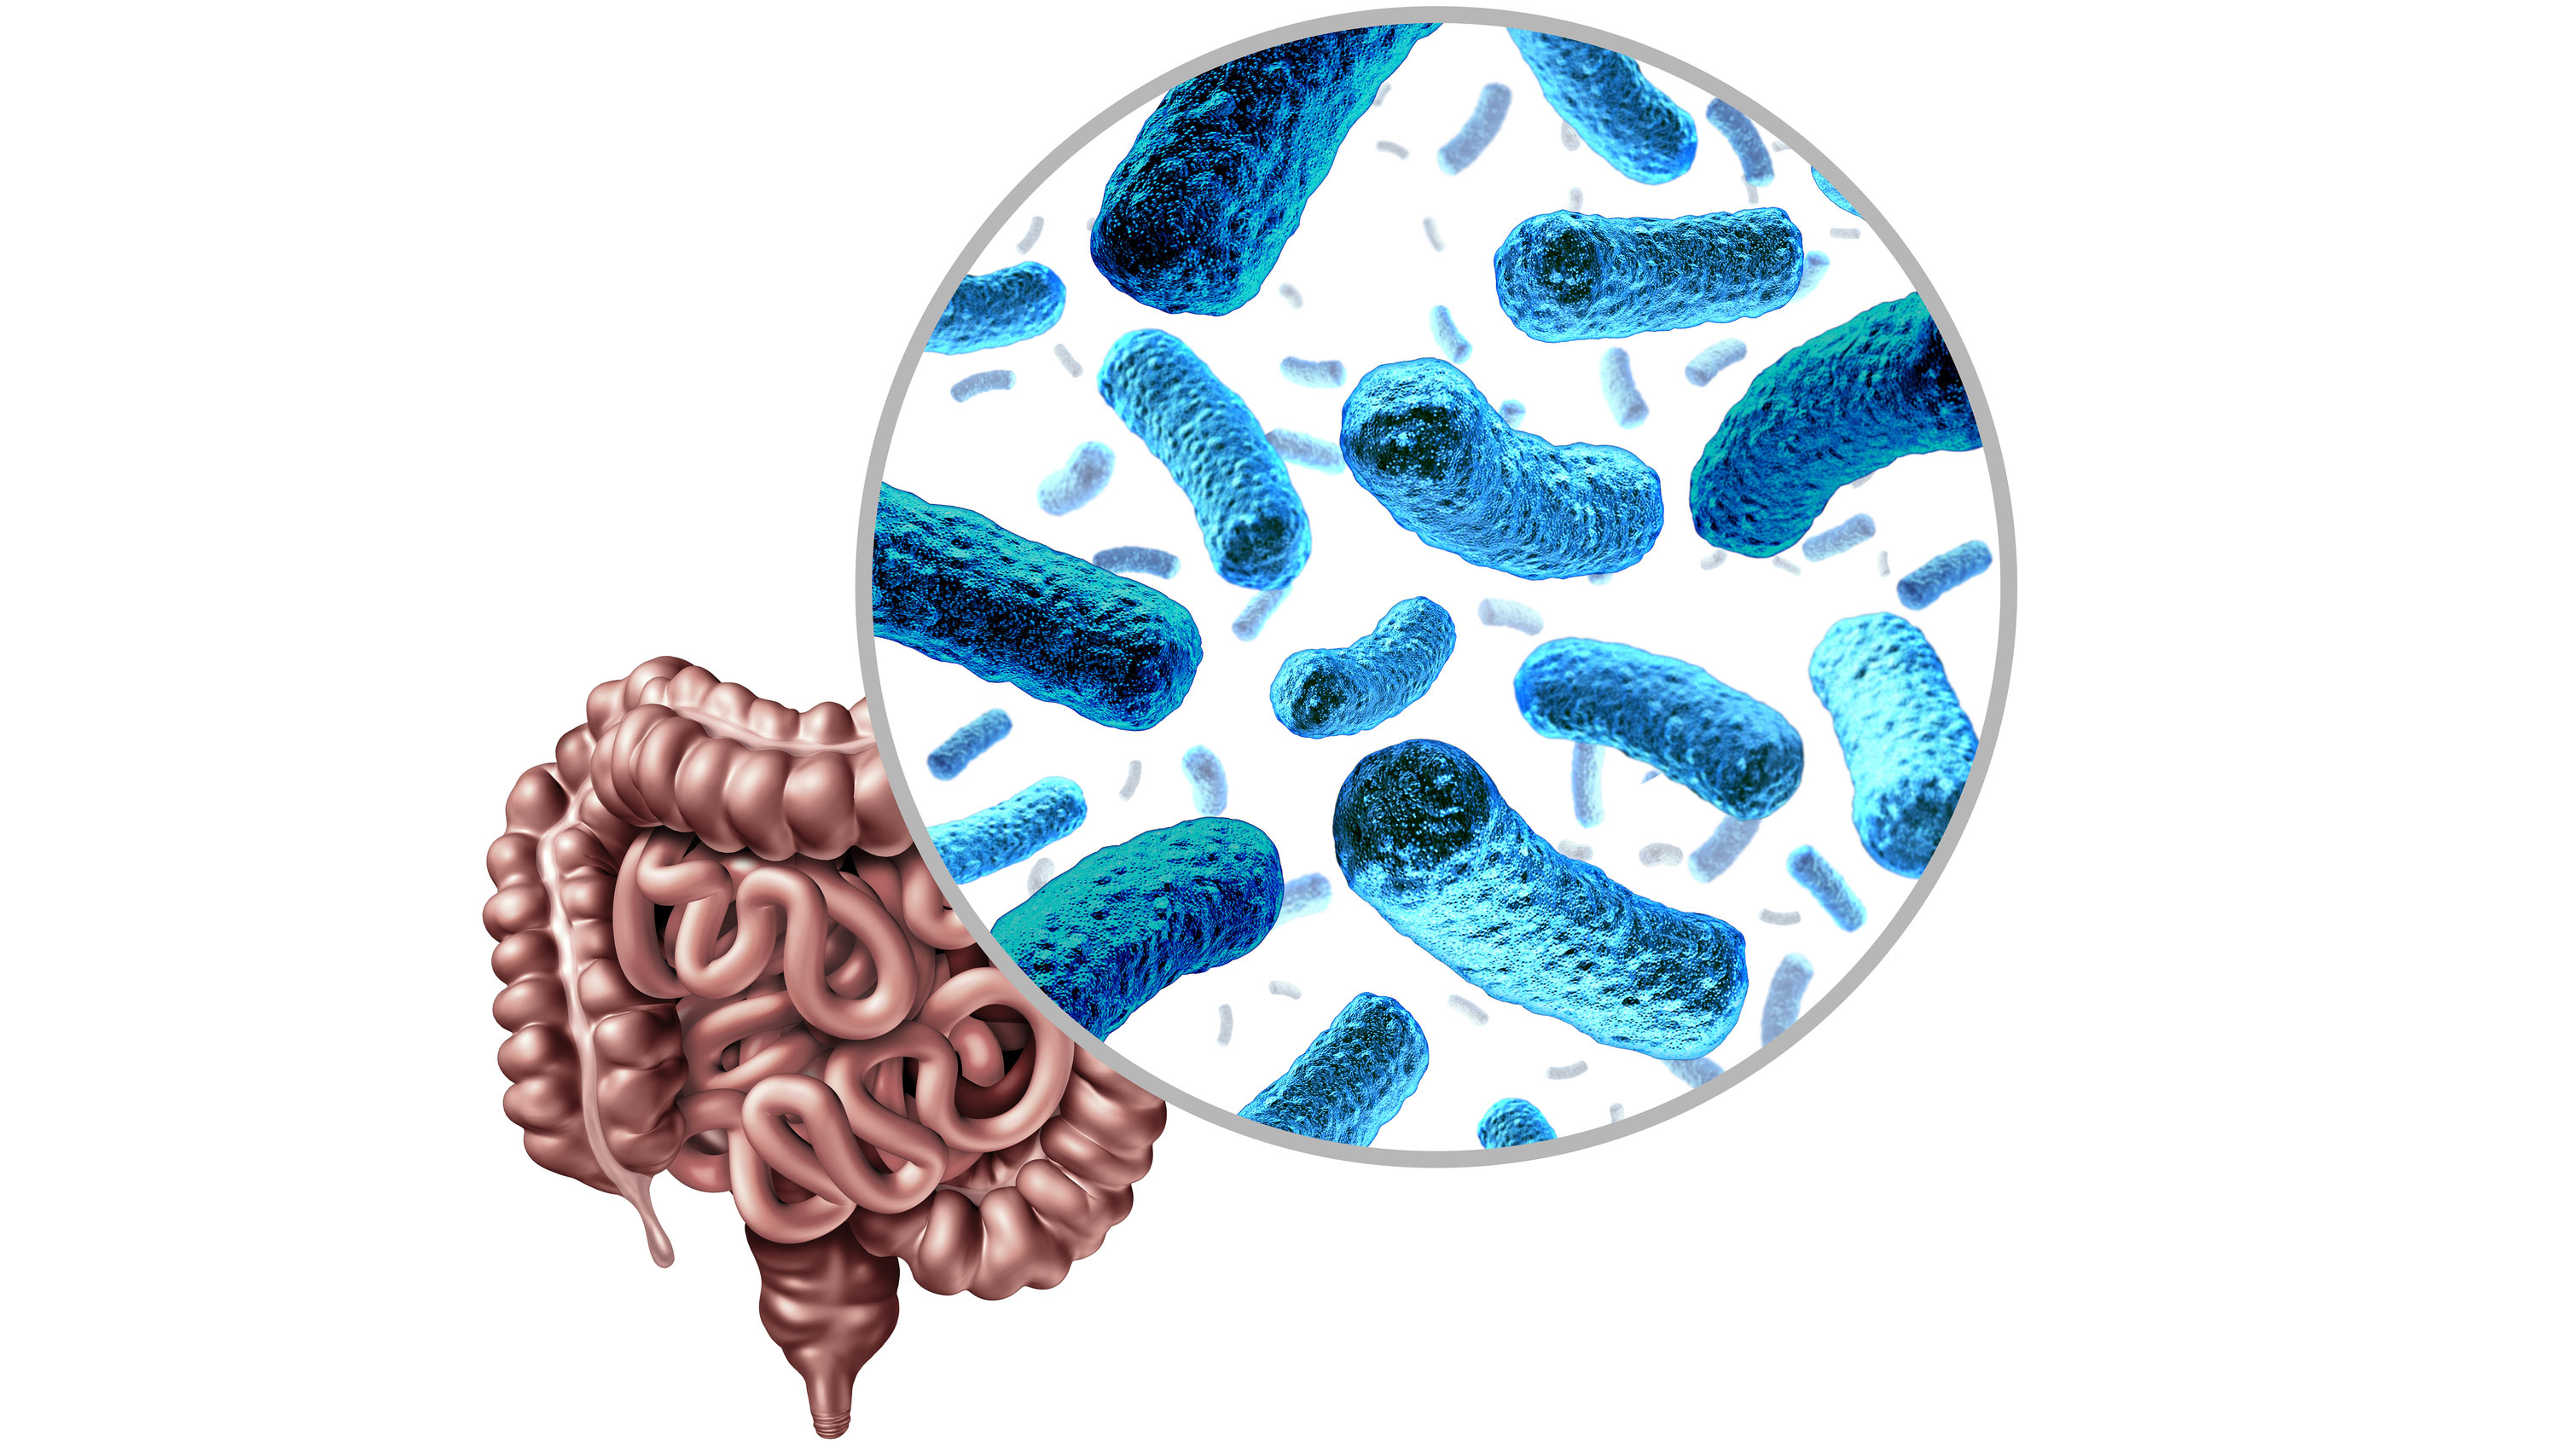 Researchers propose new way to remodel gut microbiome